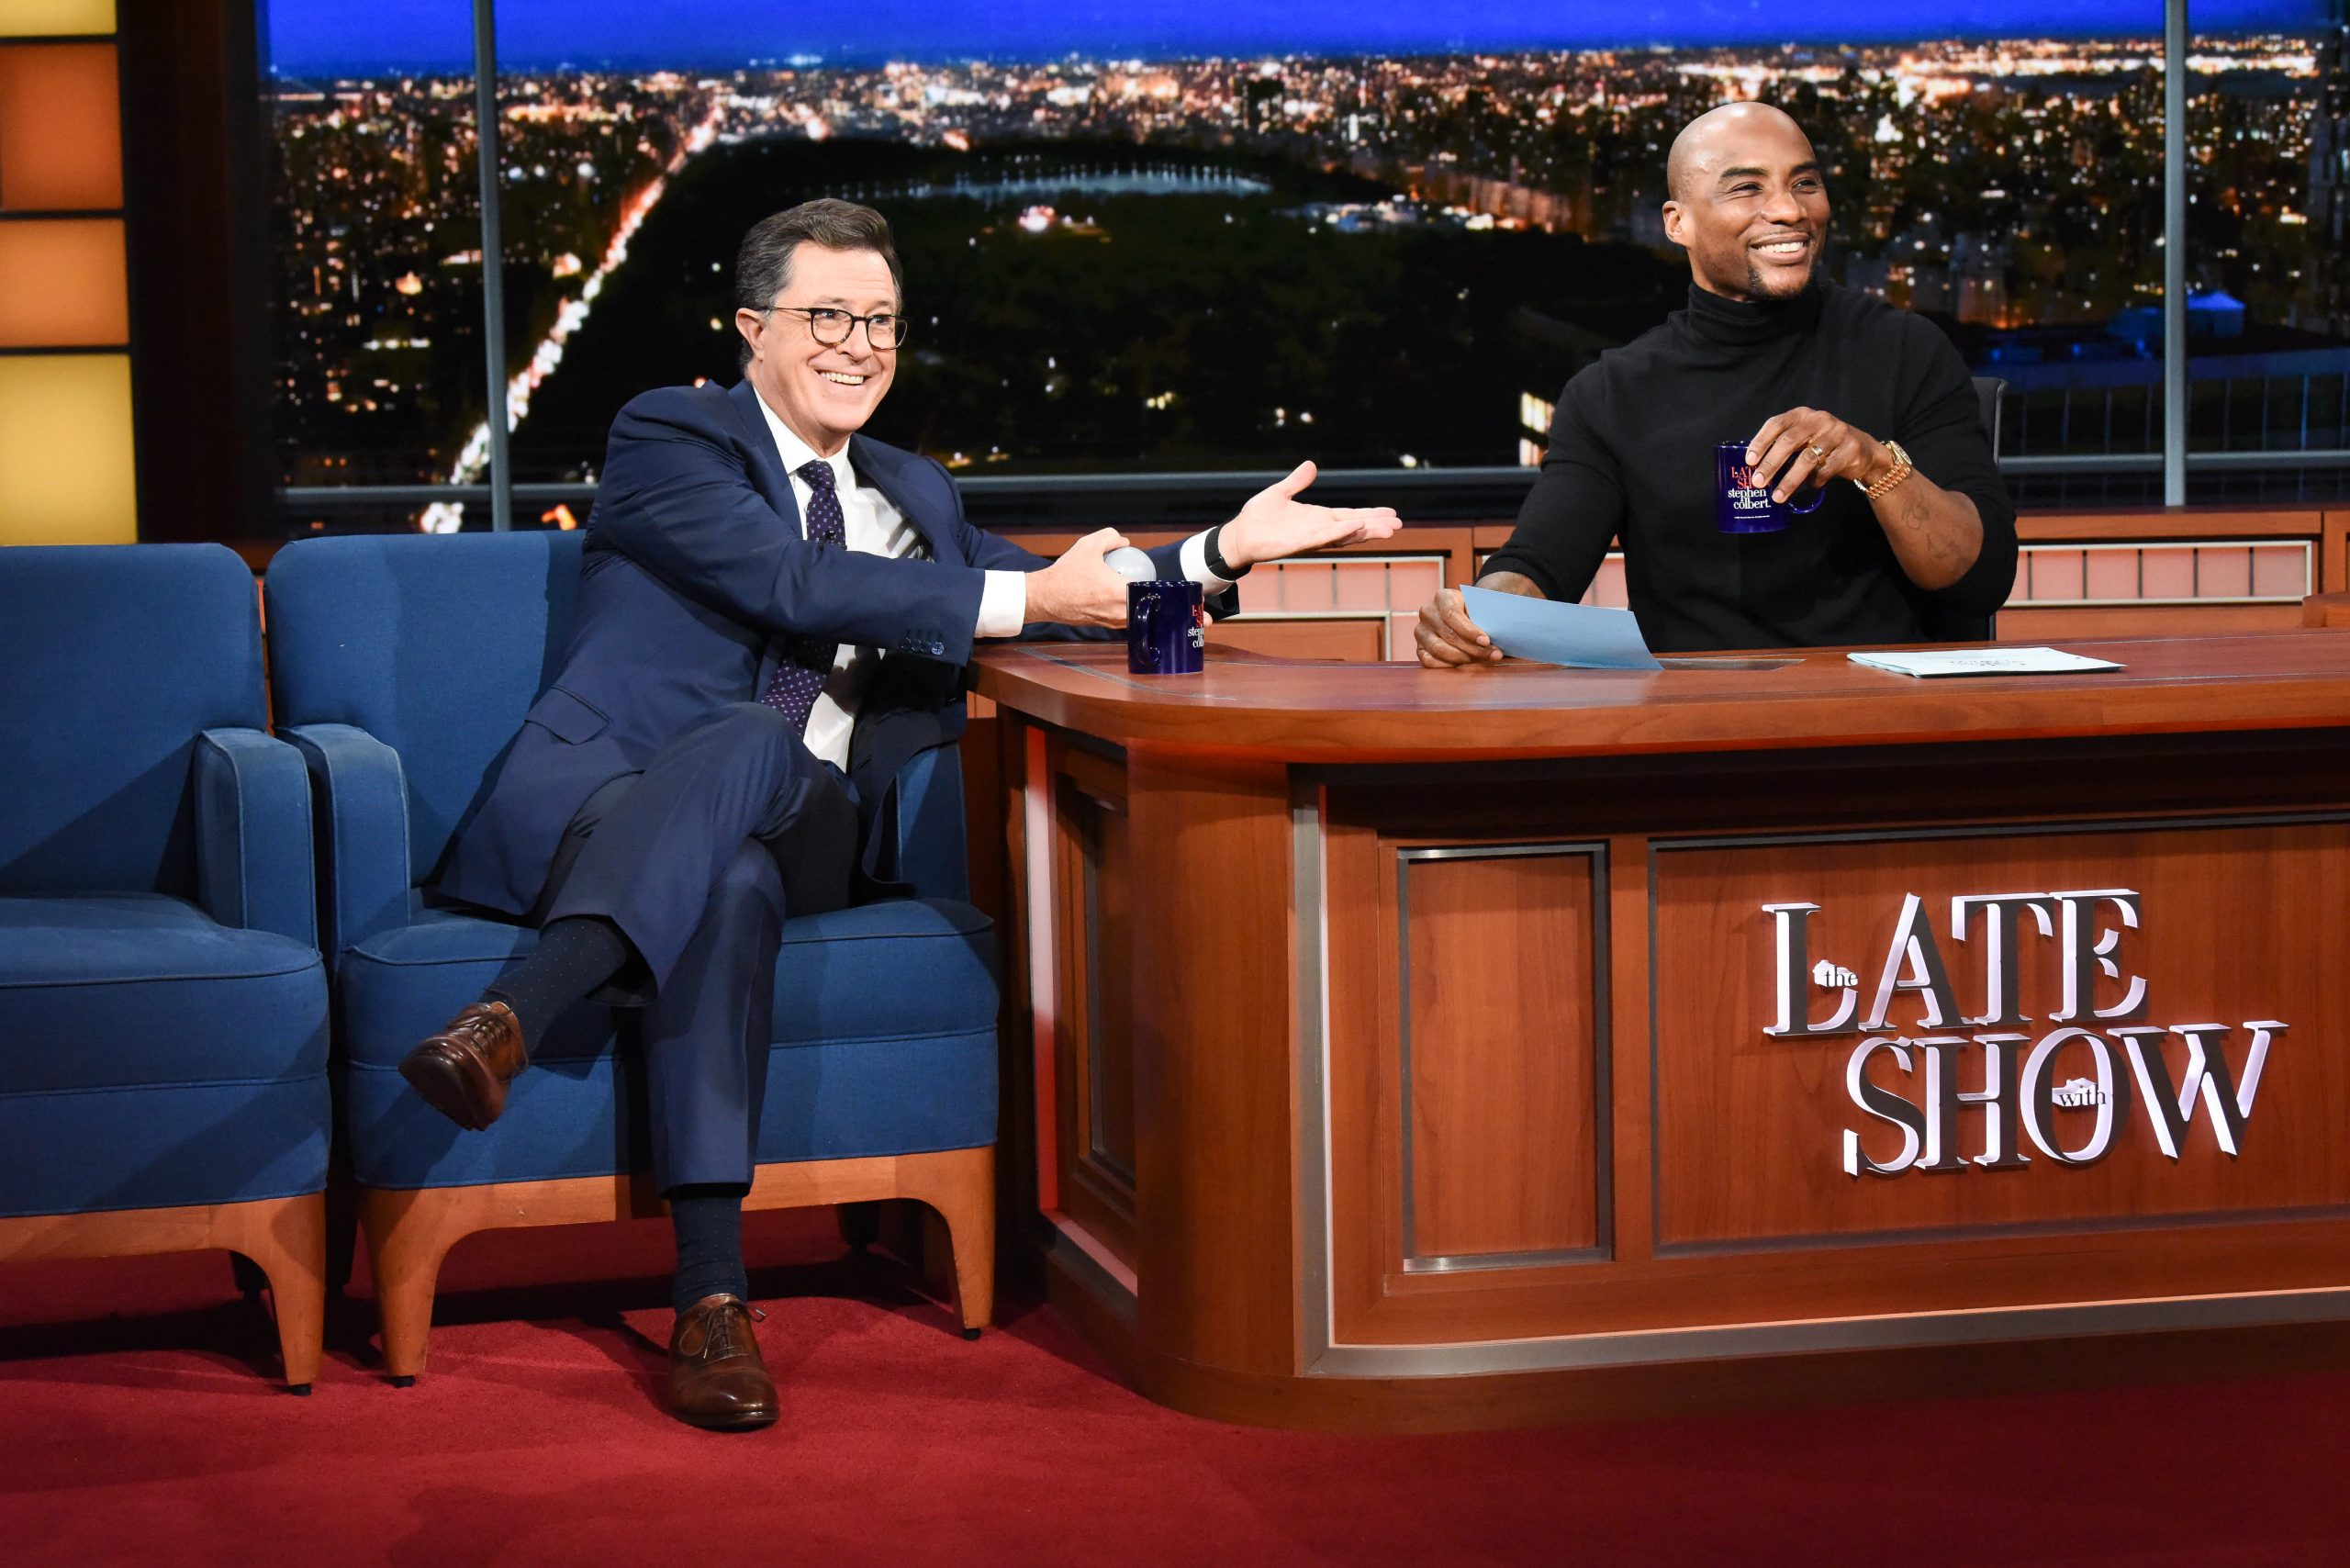 Charlamagne Tha God, Stephen Colbert to launch late night show on Comedy Central